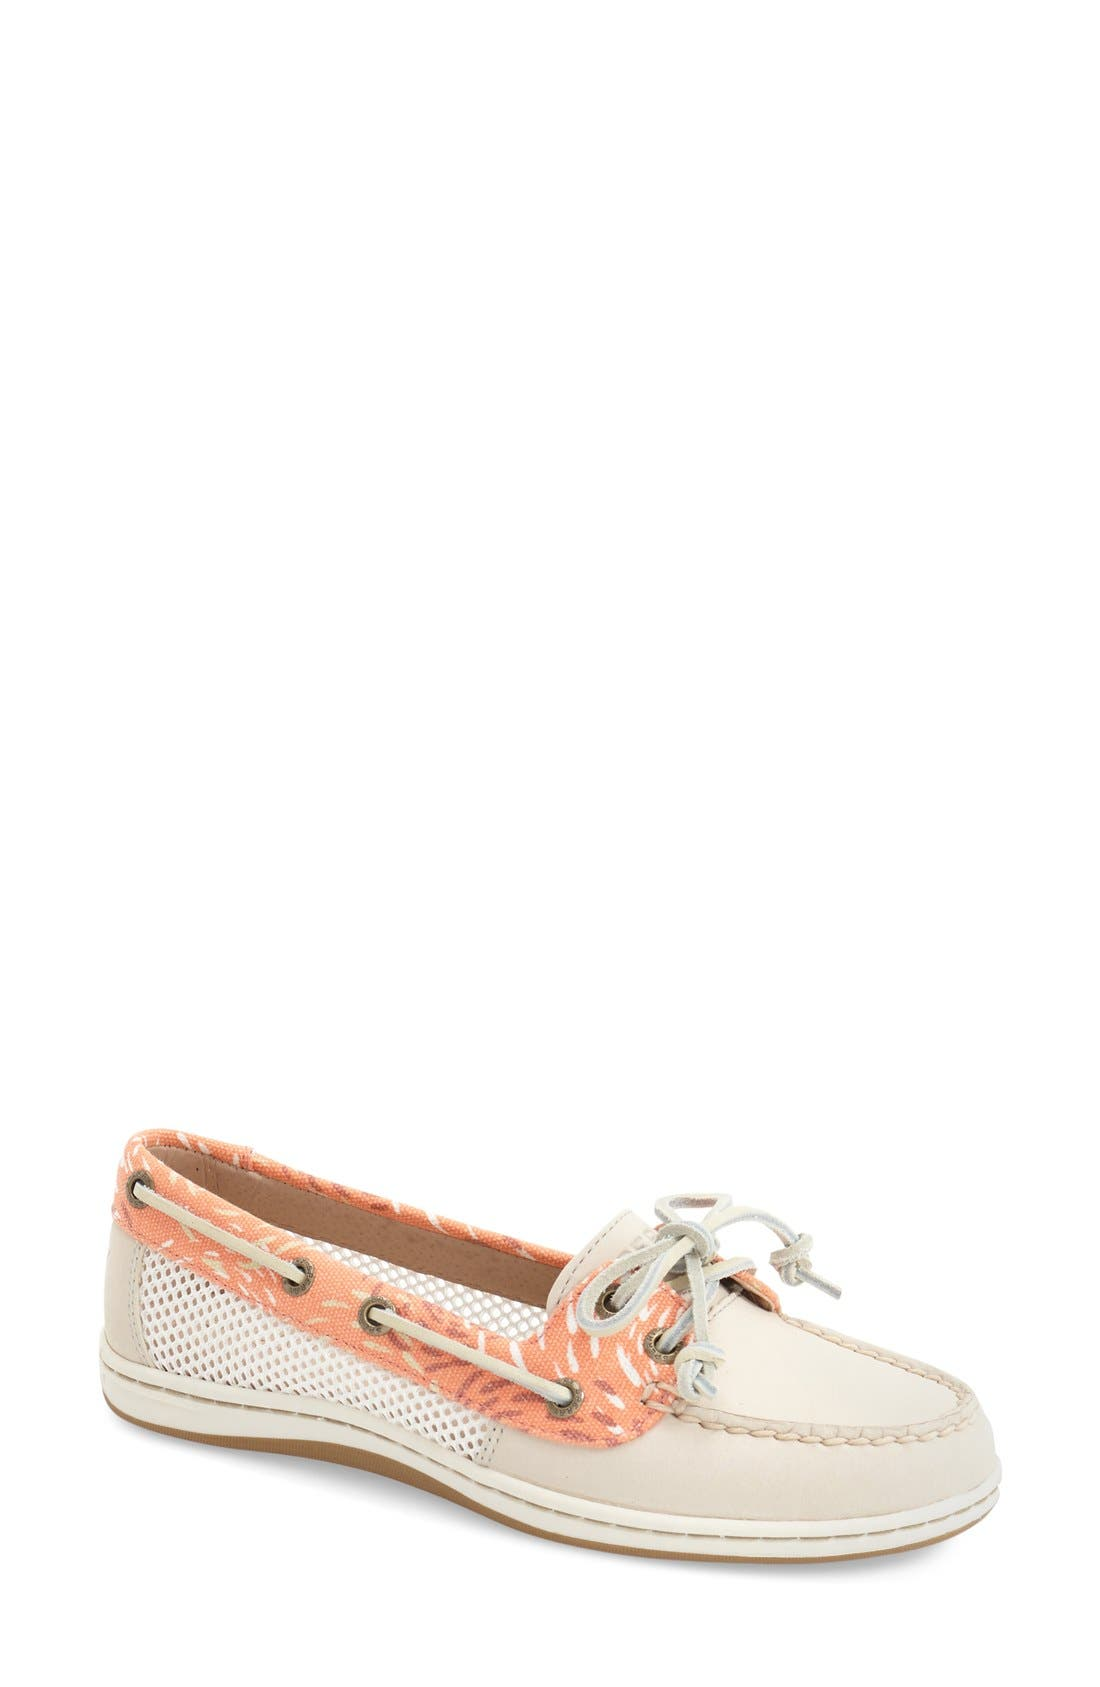 'Firefish' Boat Shoe,                             Main thumbnail 9, color,